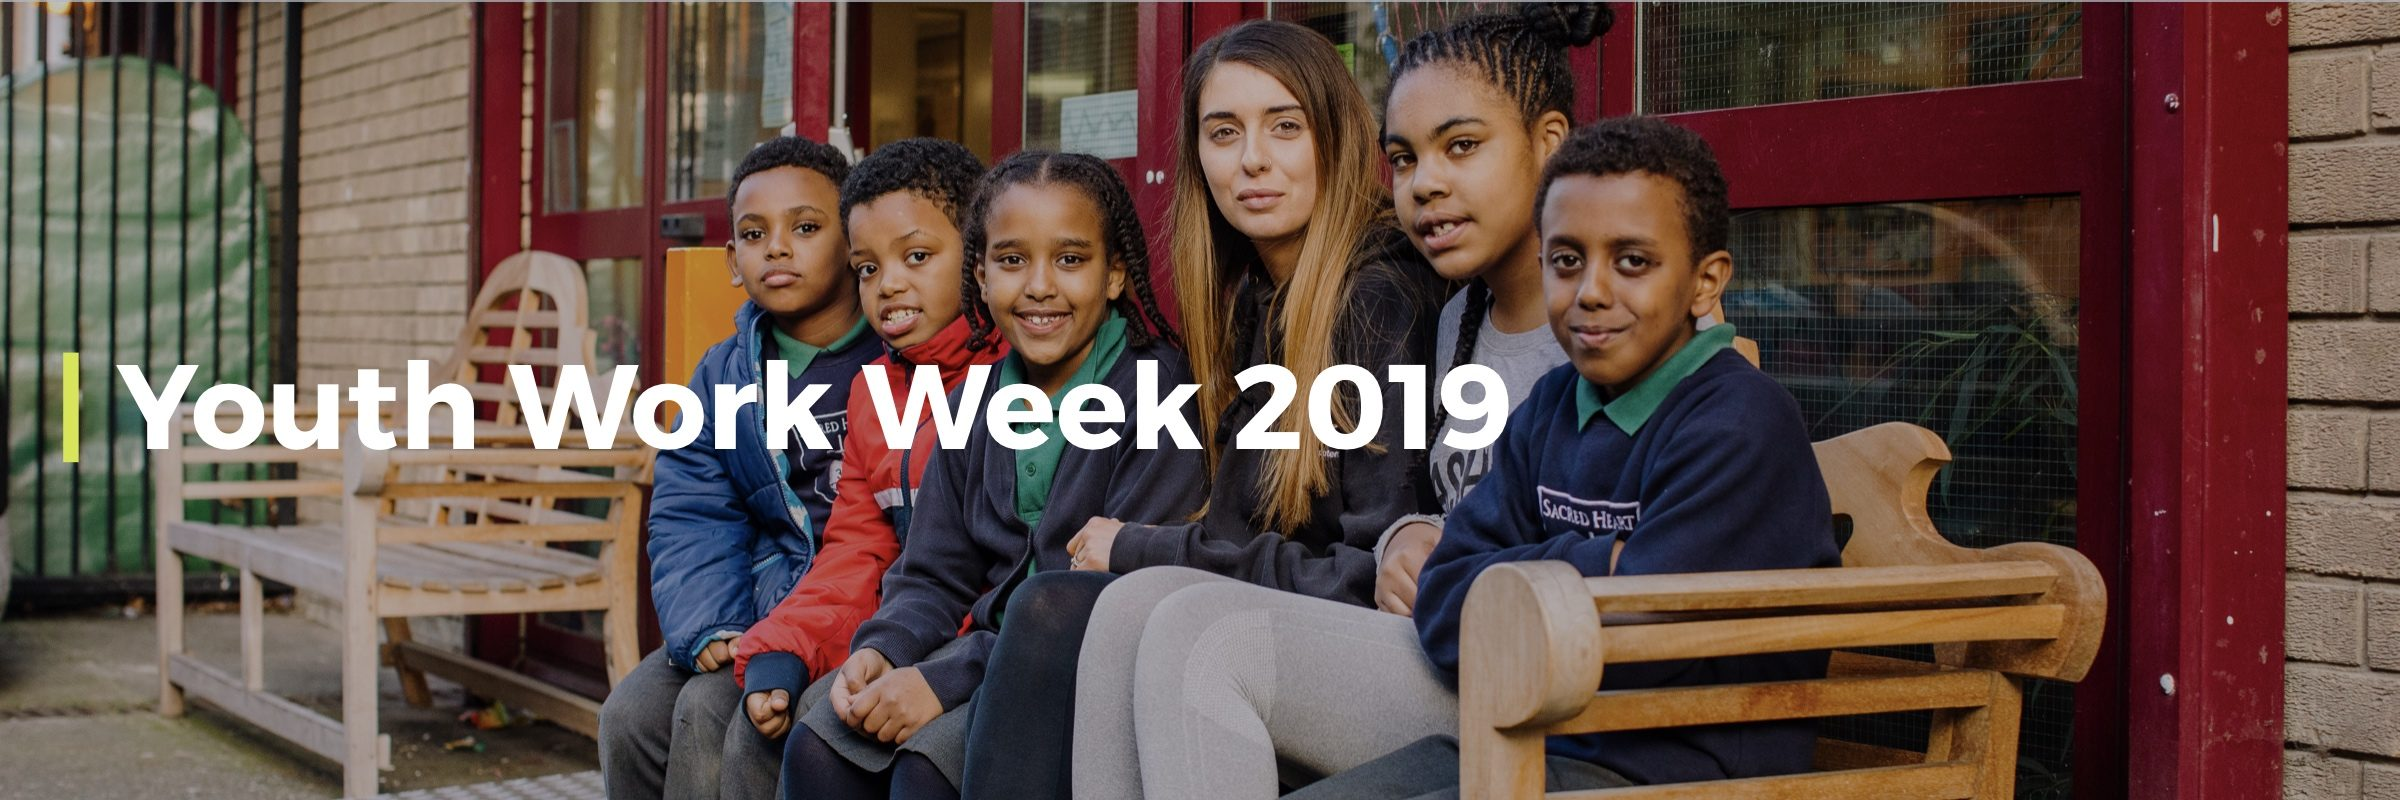 Youth Work week 2019